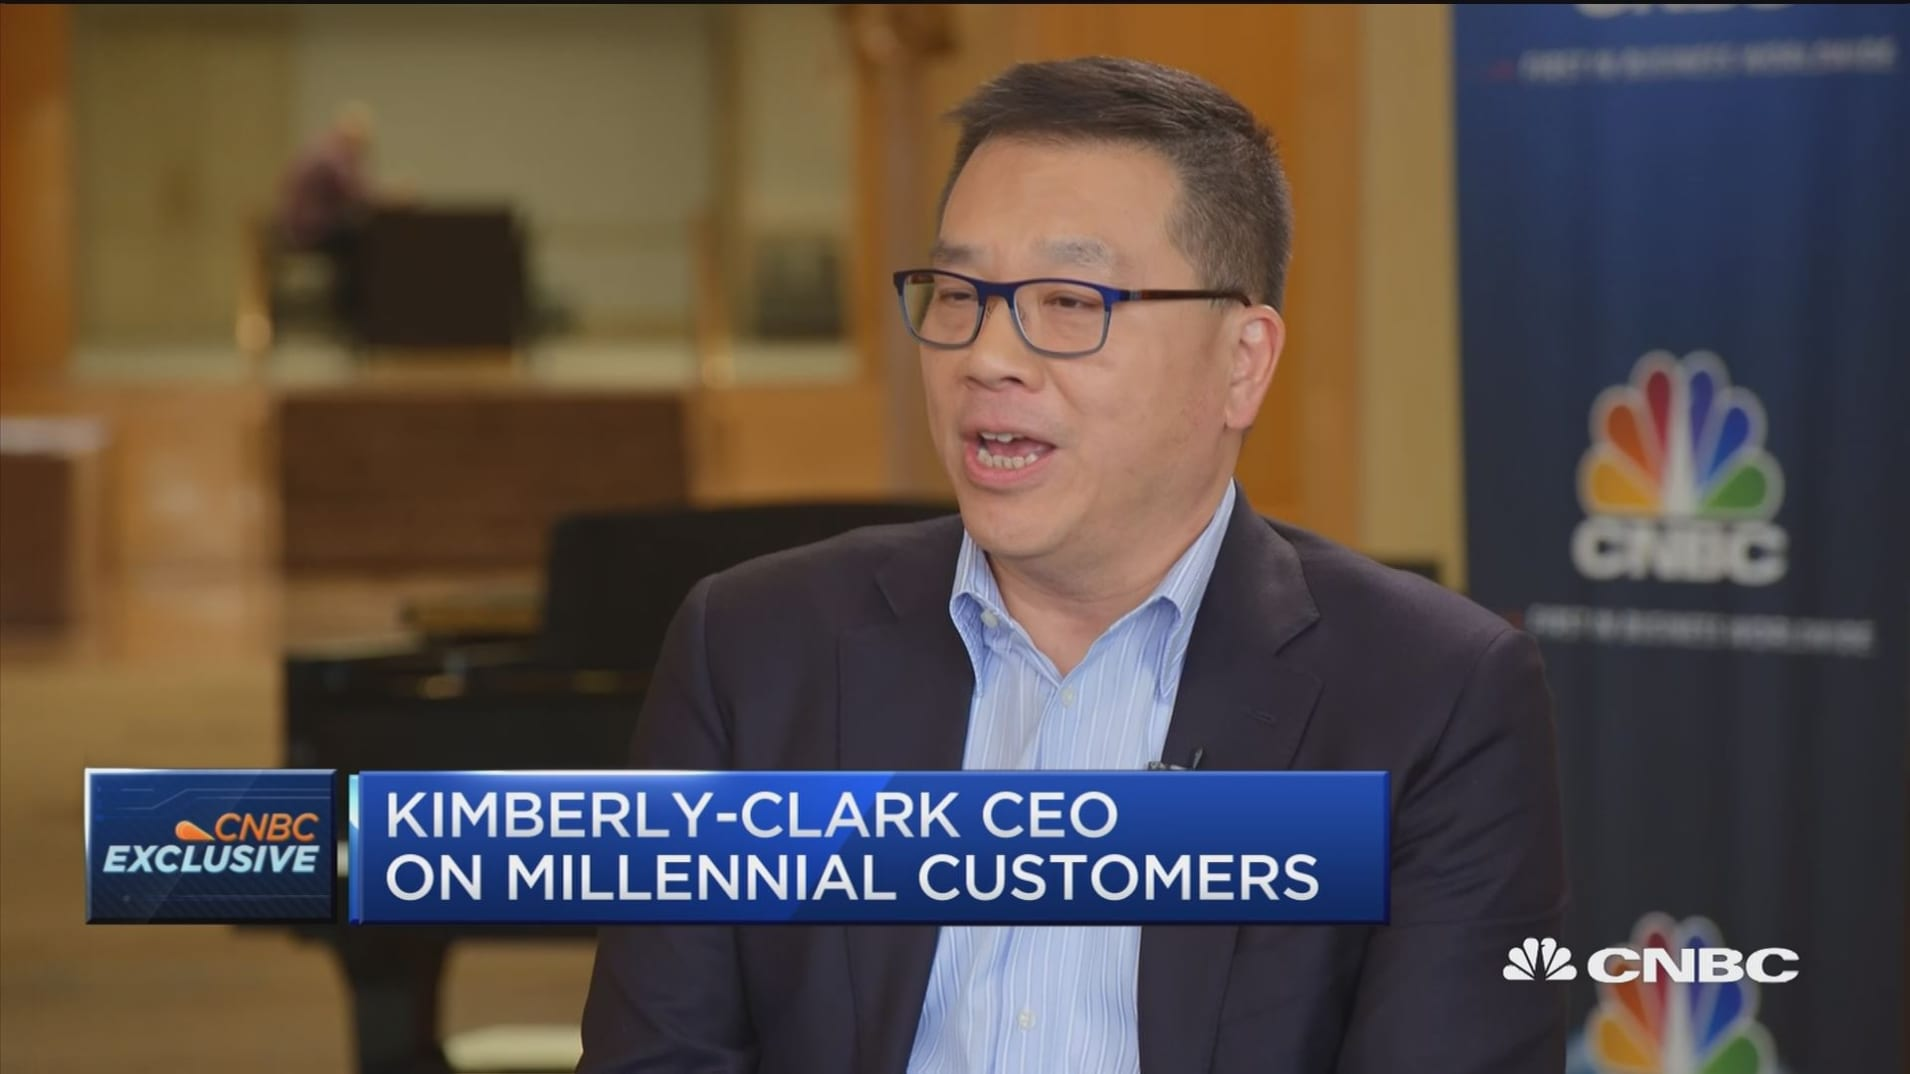 Some categories have 100 percent digital marketing: Kimberly-Clark CEO